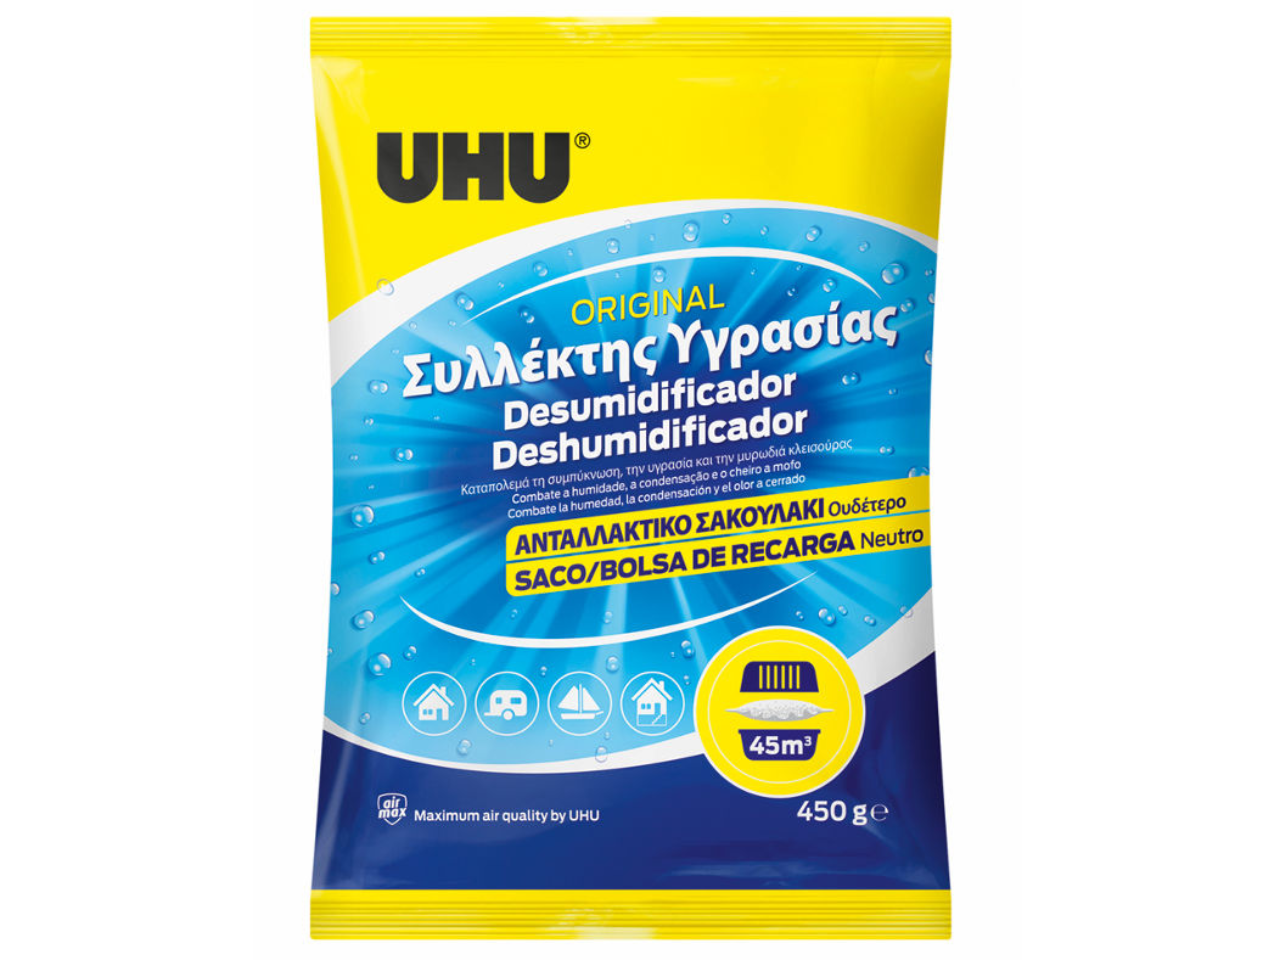 Air dehumidifier tablets and refill packs